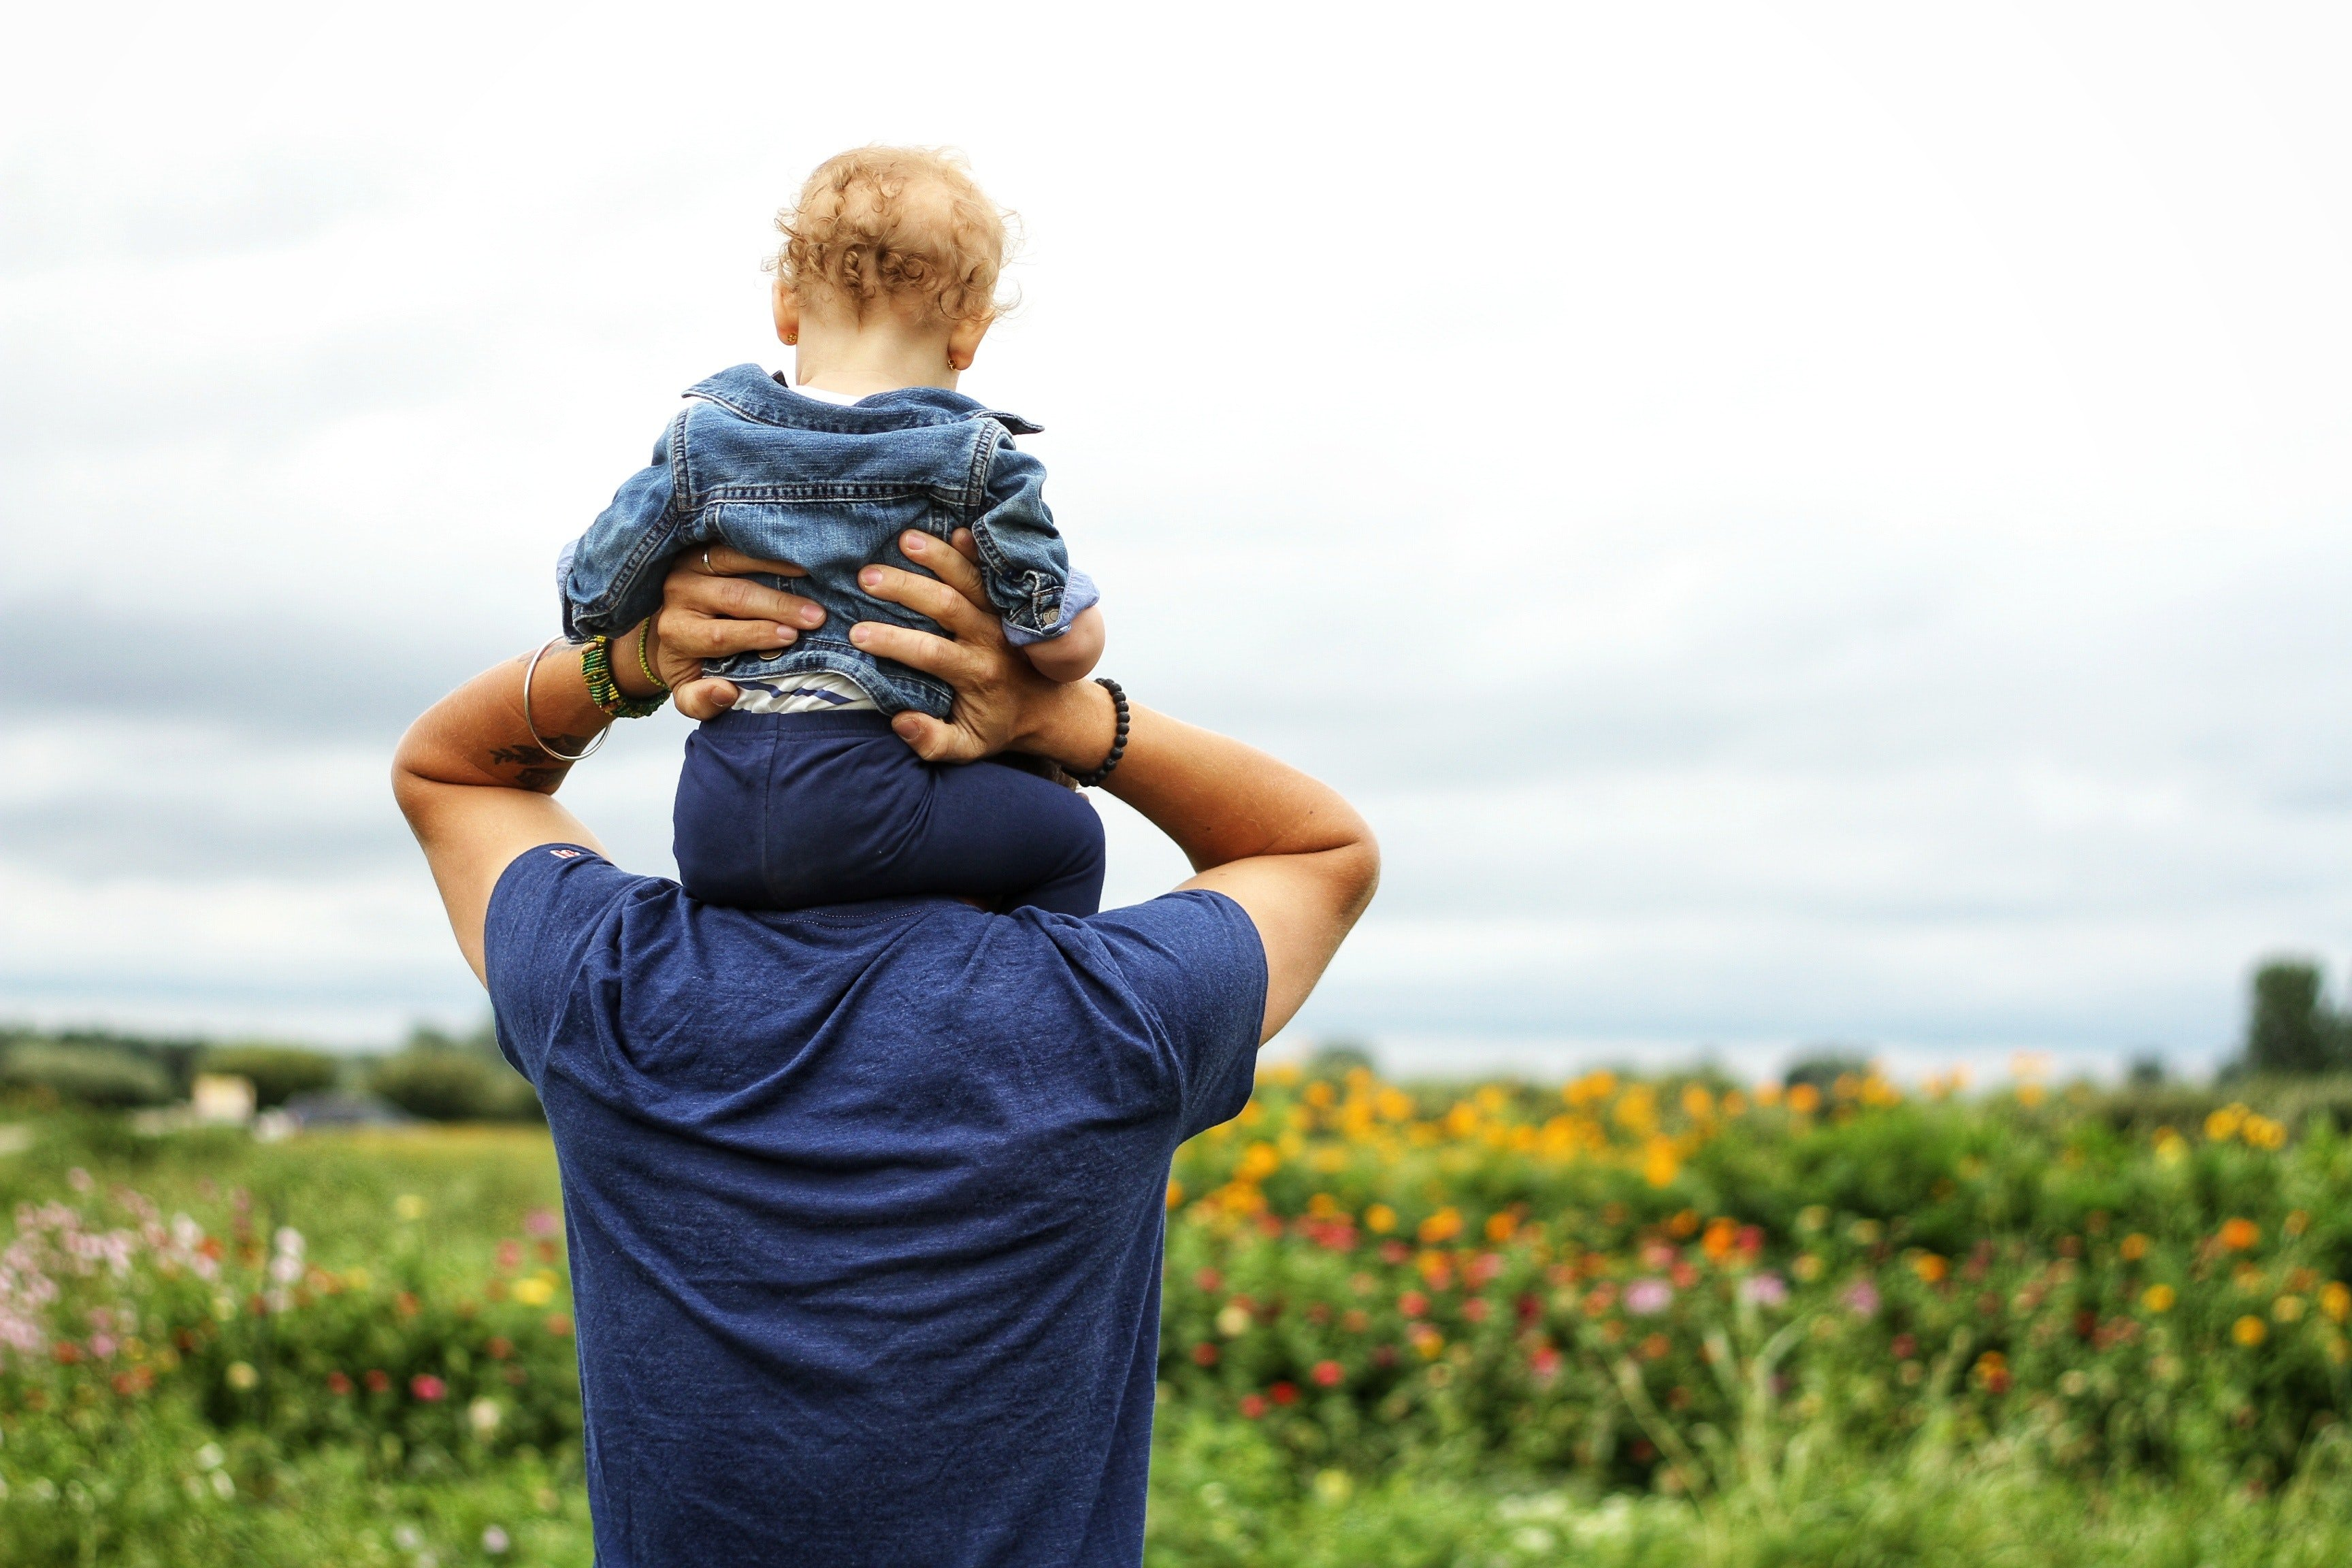 Are Dads Treated Differently Than Moms in Custody Cases?